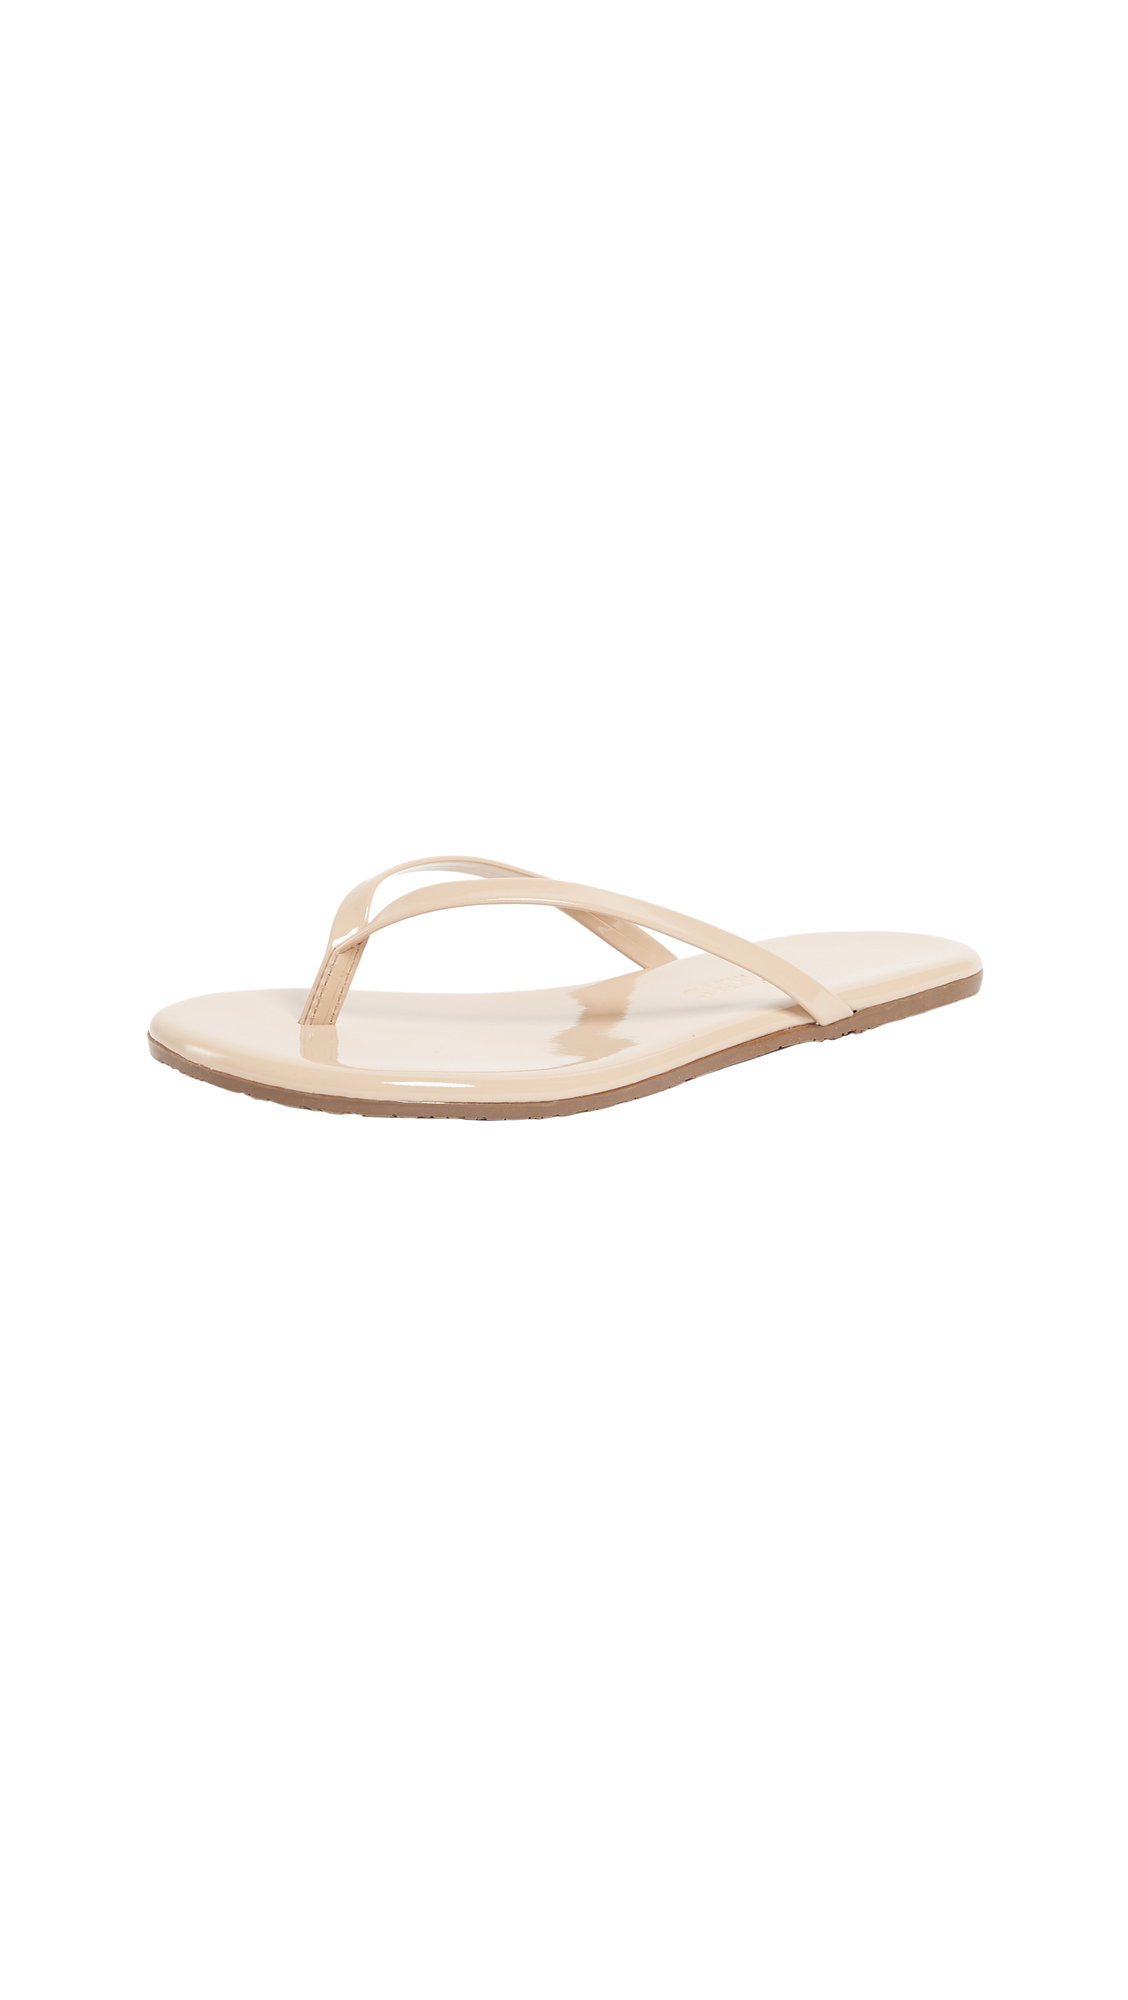 TKEES Foundations Glosses Flip Flops